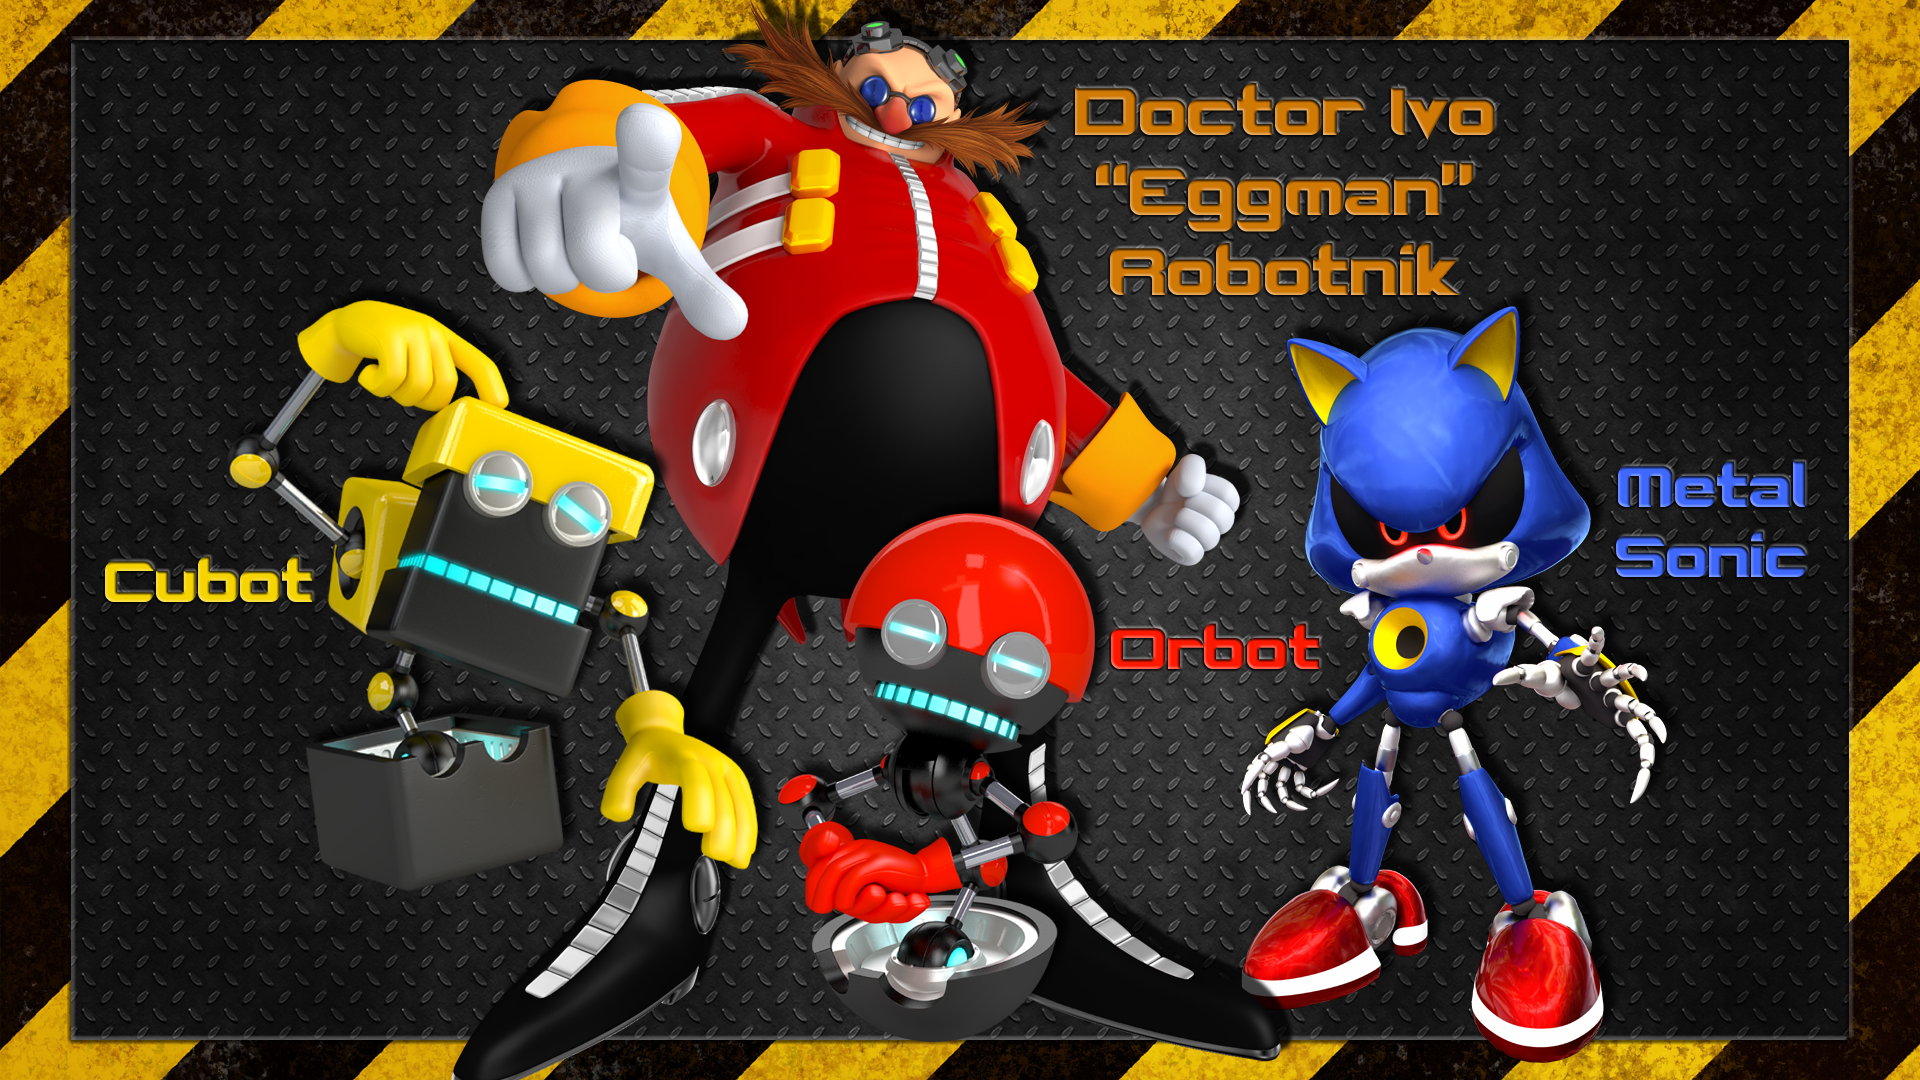 Eggman Orbot Cubot And Metal Sonic Wallpaper By William David